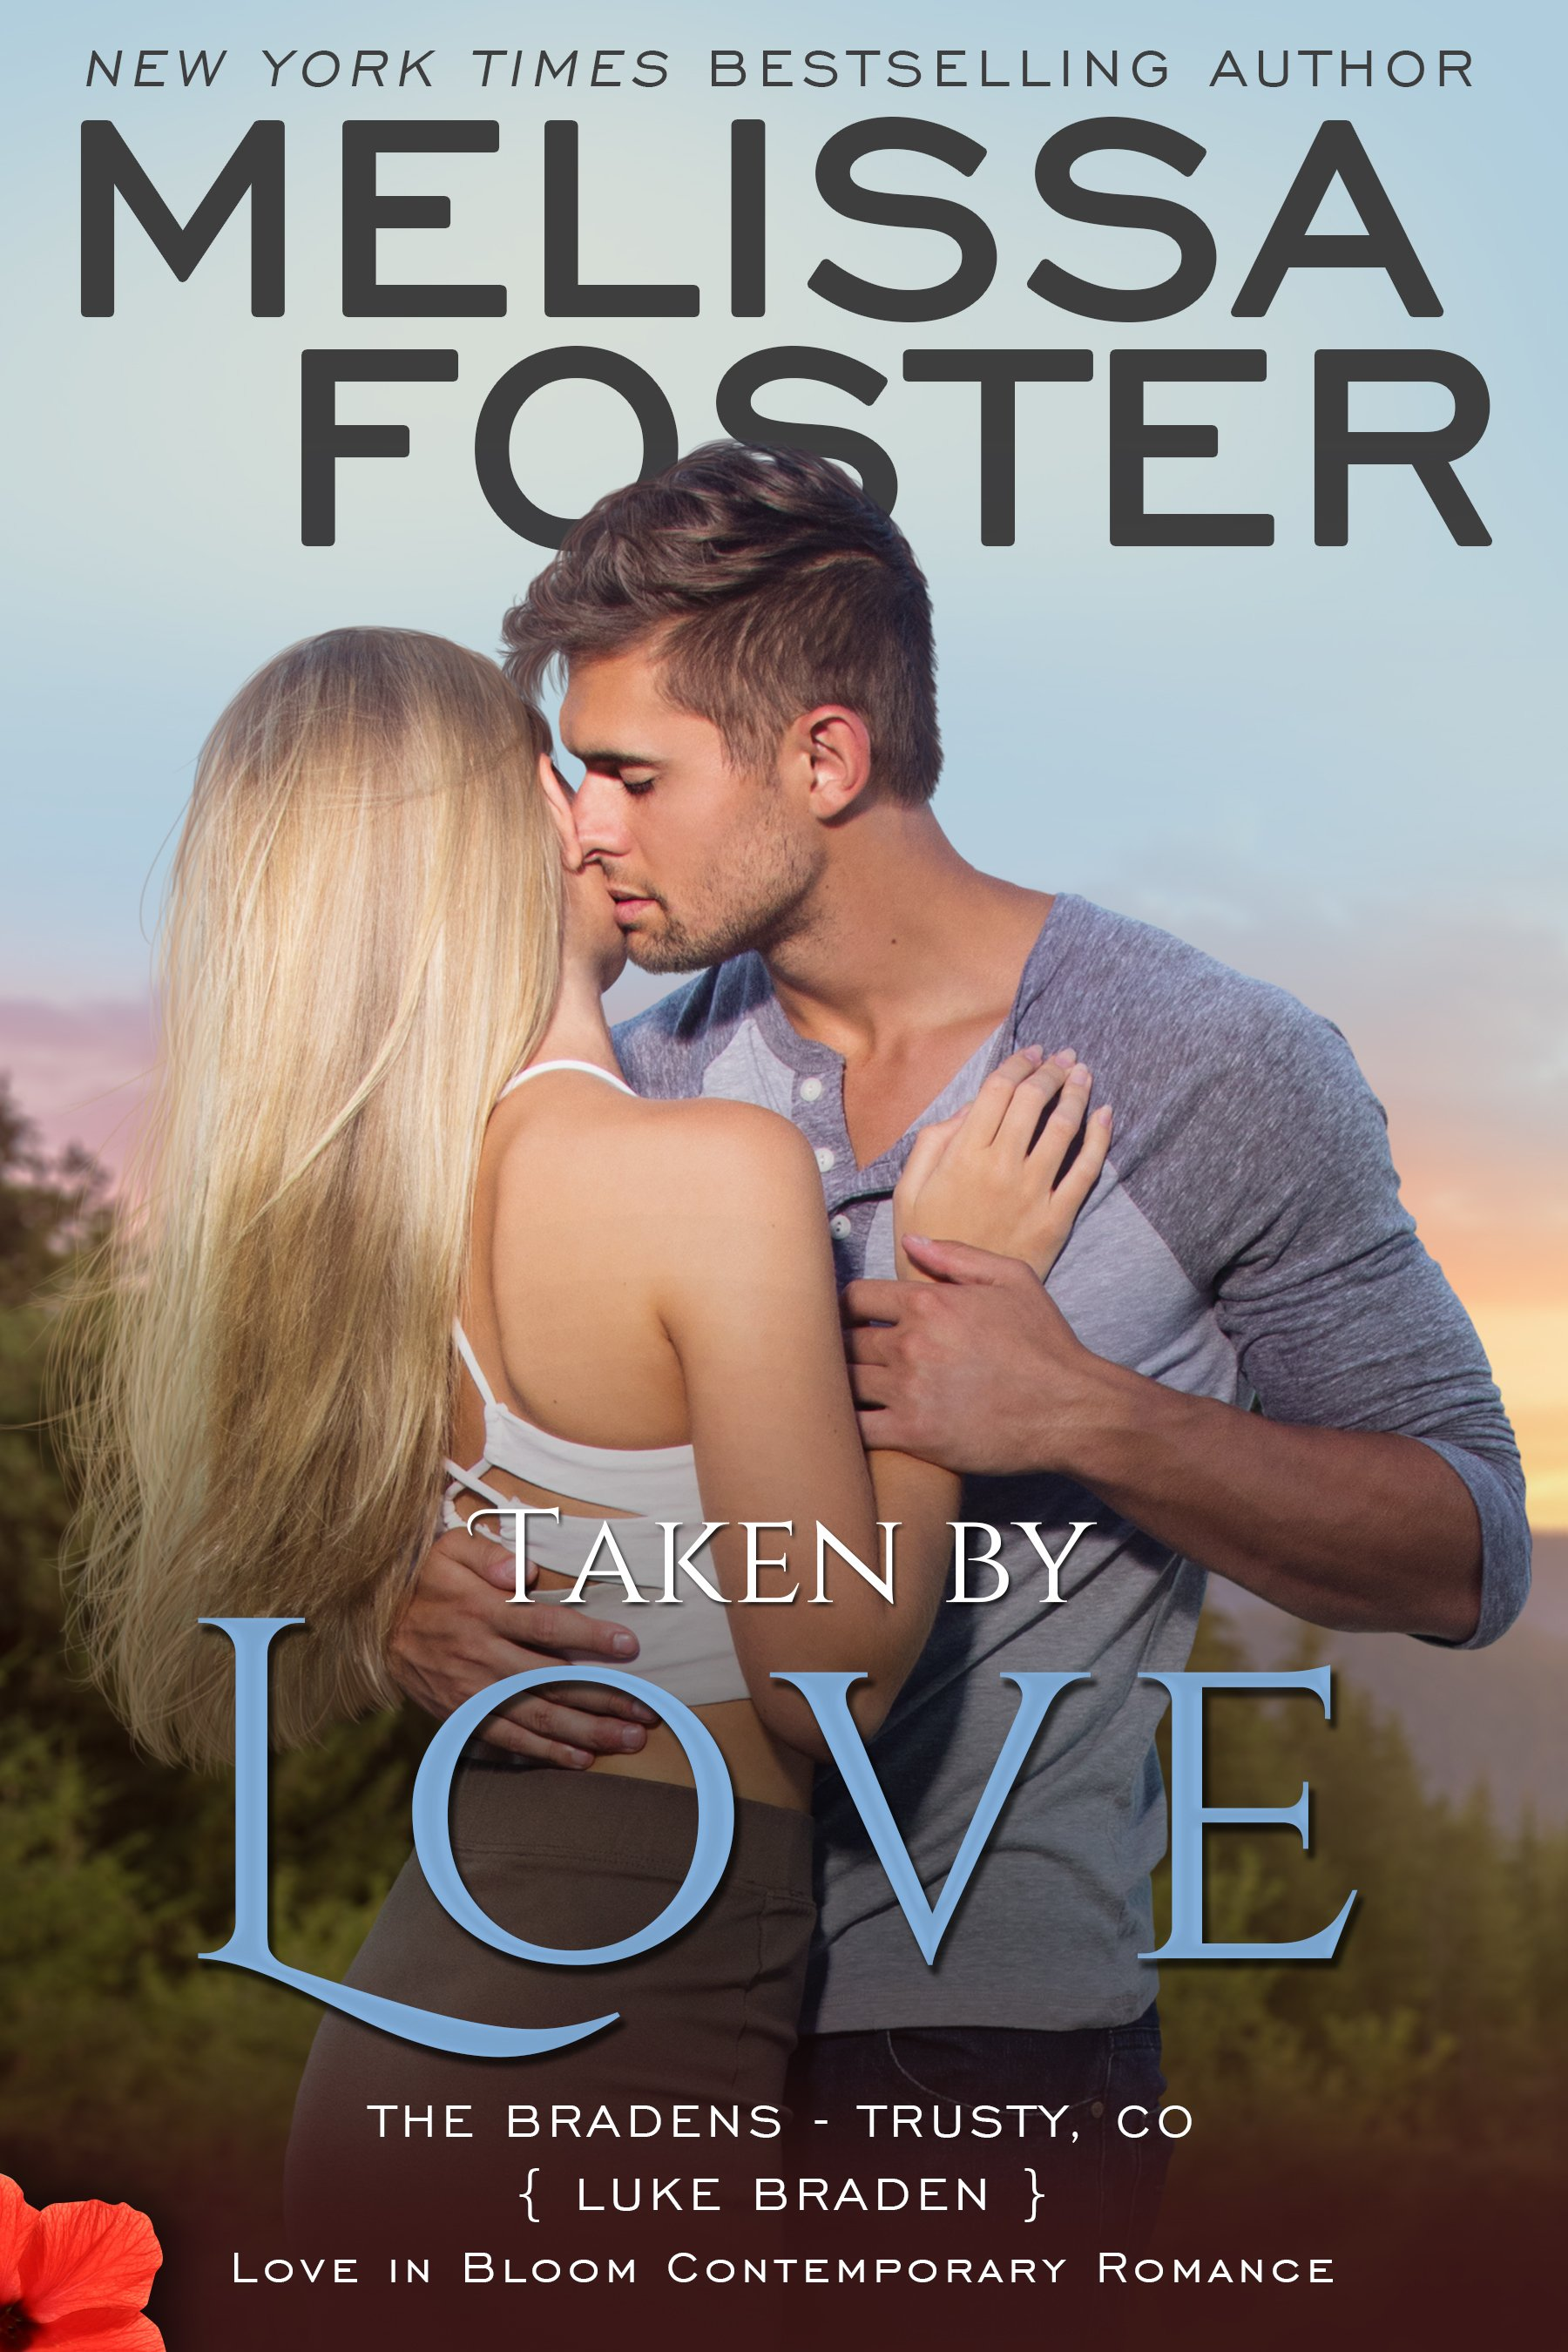 Taken by Love, The Bradens, by Melissa Foster